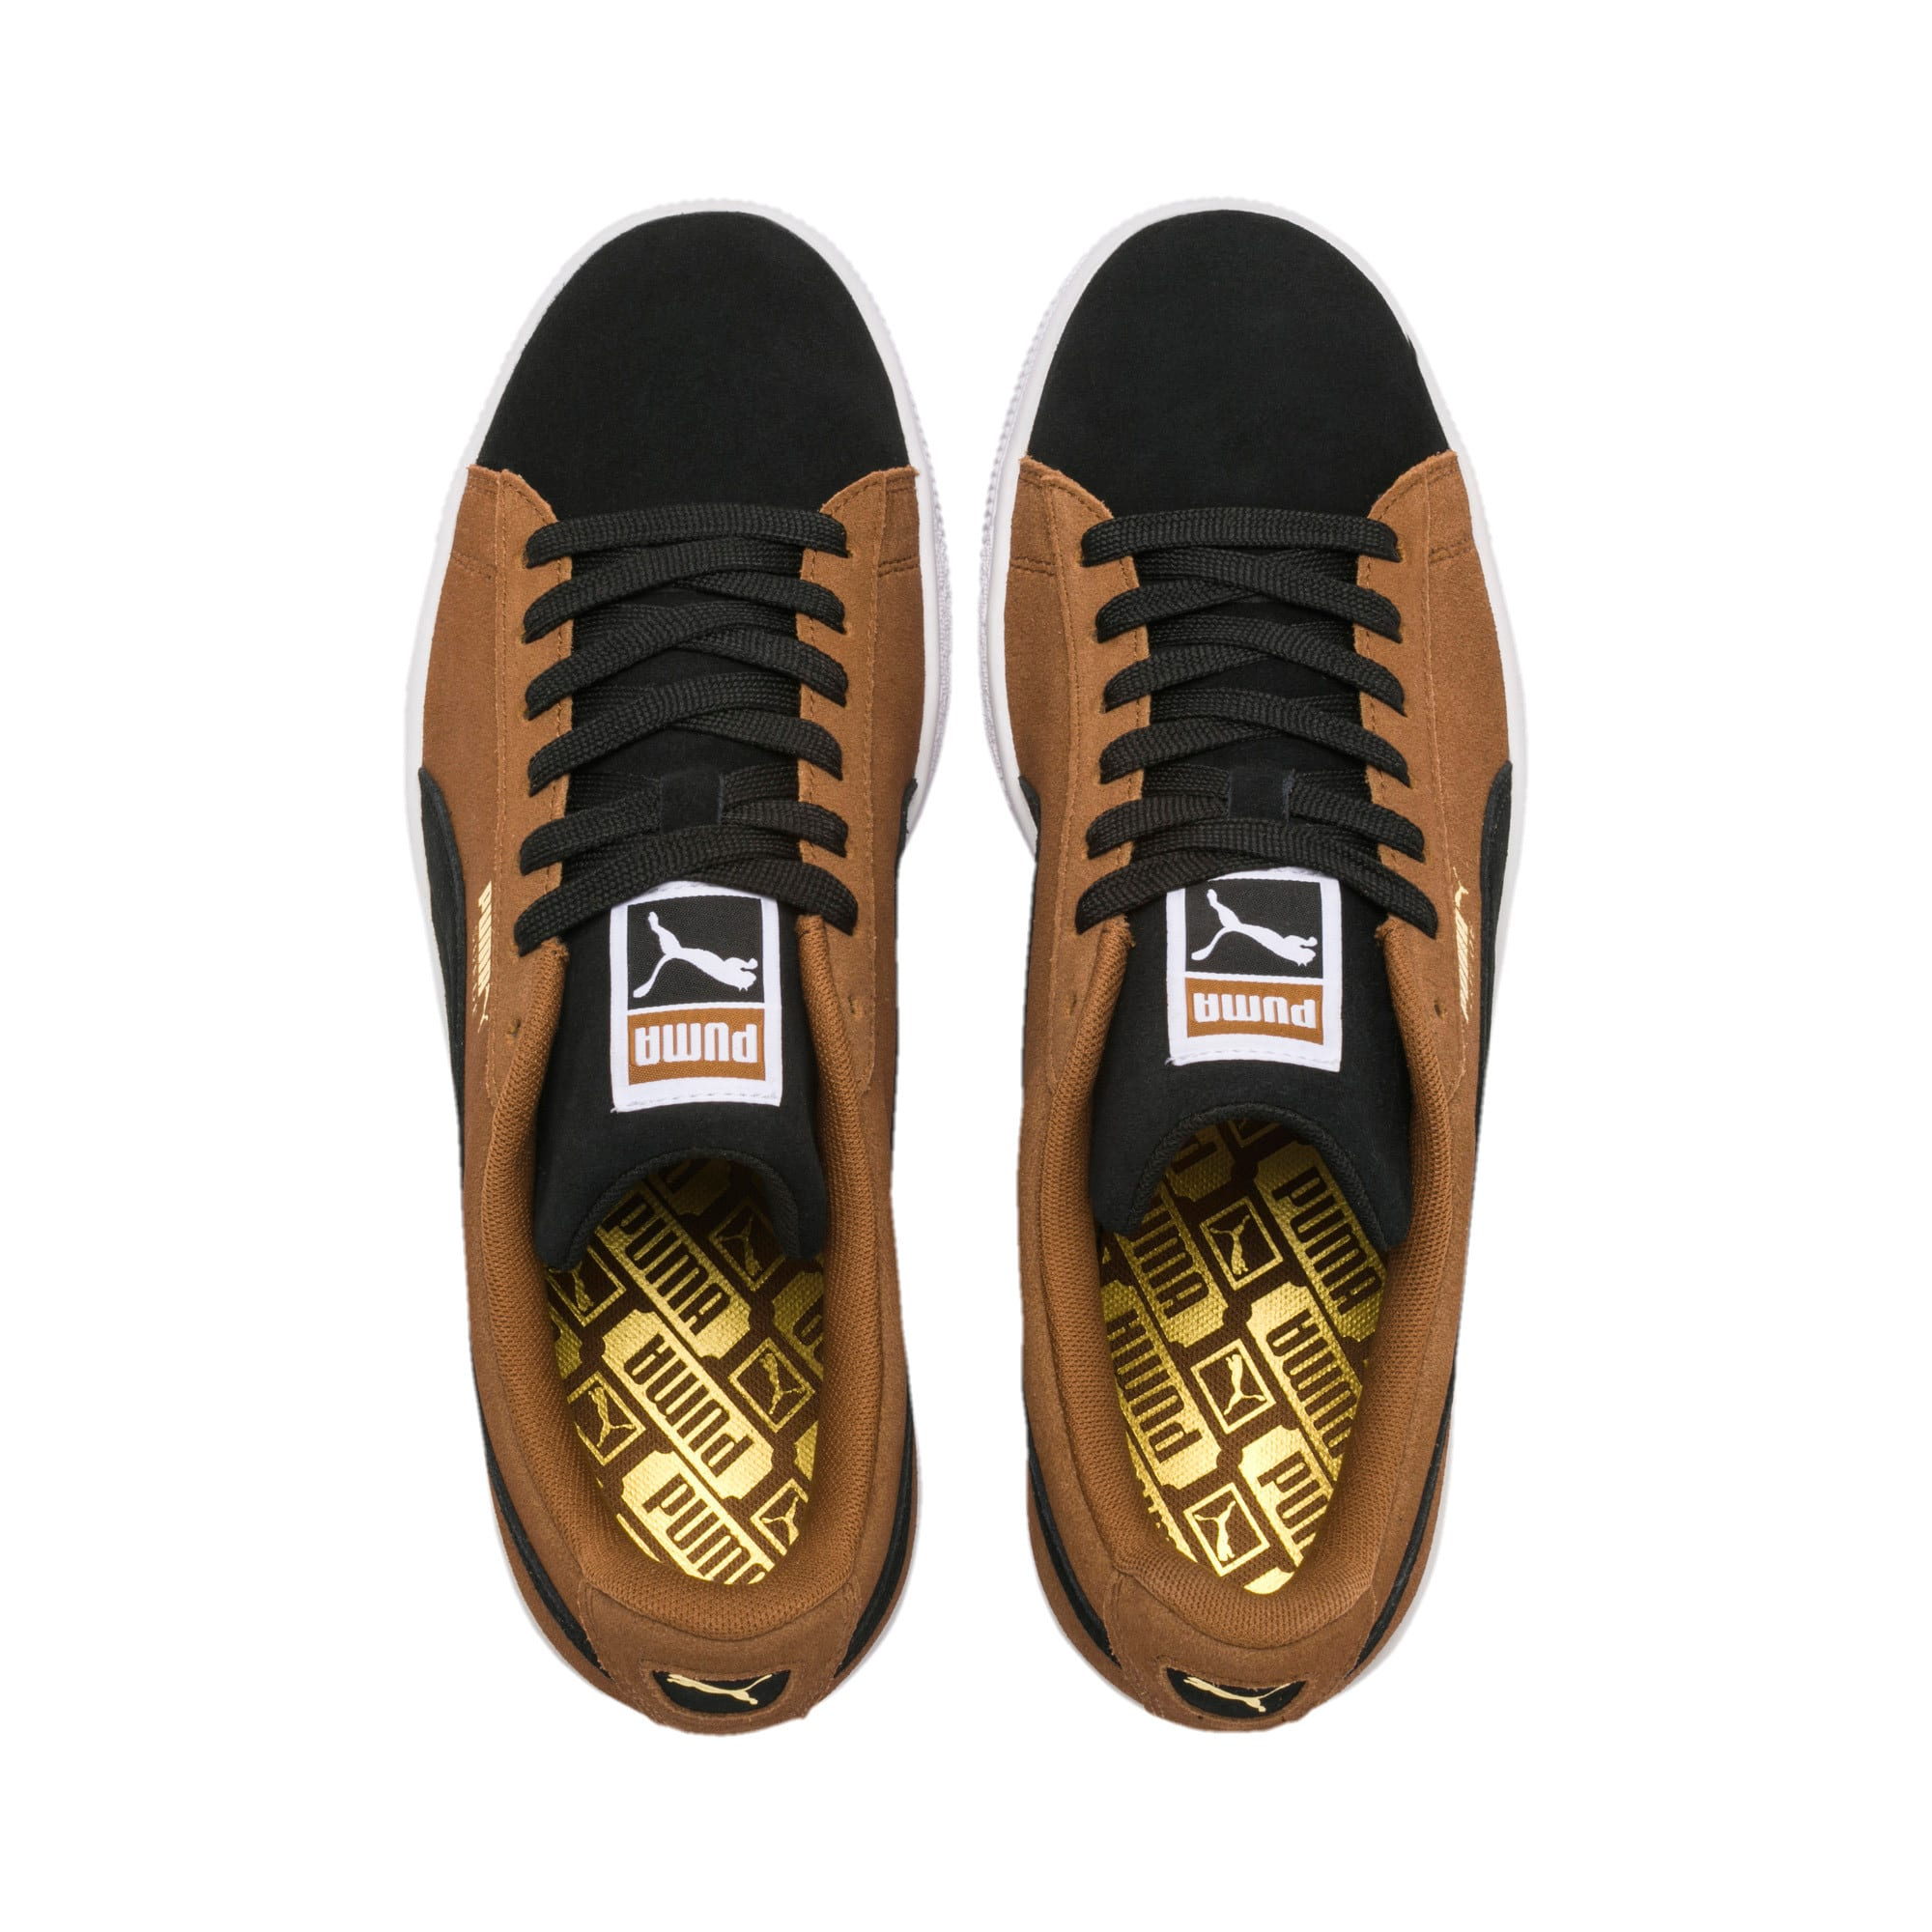 Suede Classic Trainers, Dachsund-Puma Black-P Wht, large